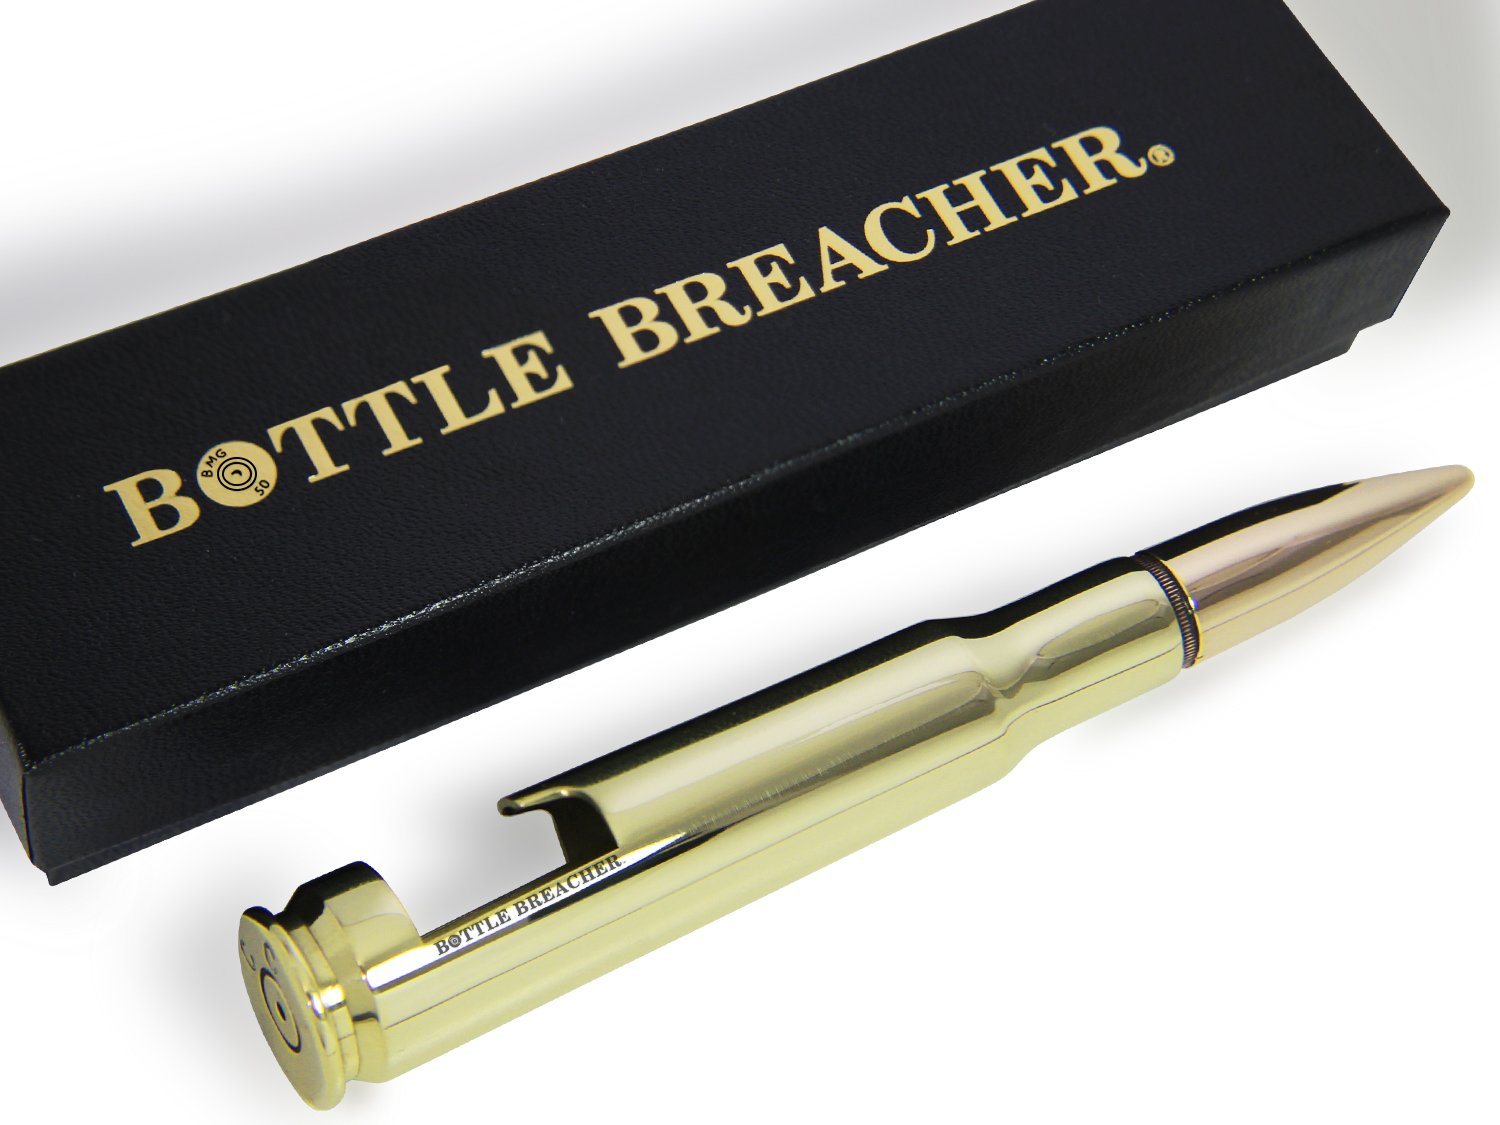 50 Caliber BMG Polished Brass Bottle Breacher Bottle Opener with Gift Box Made in the USA